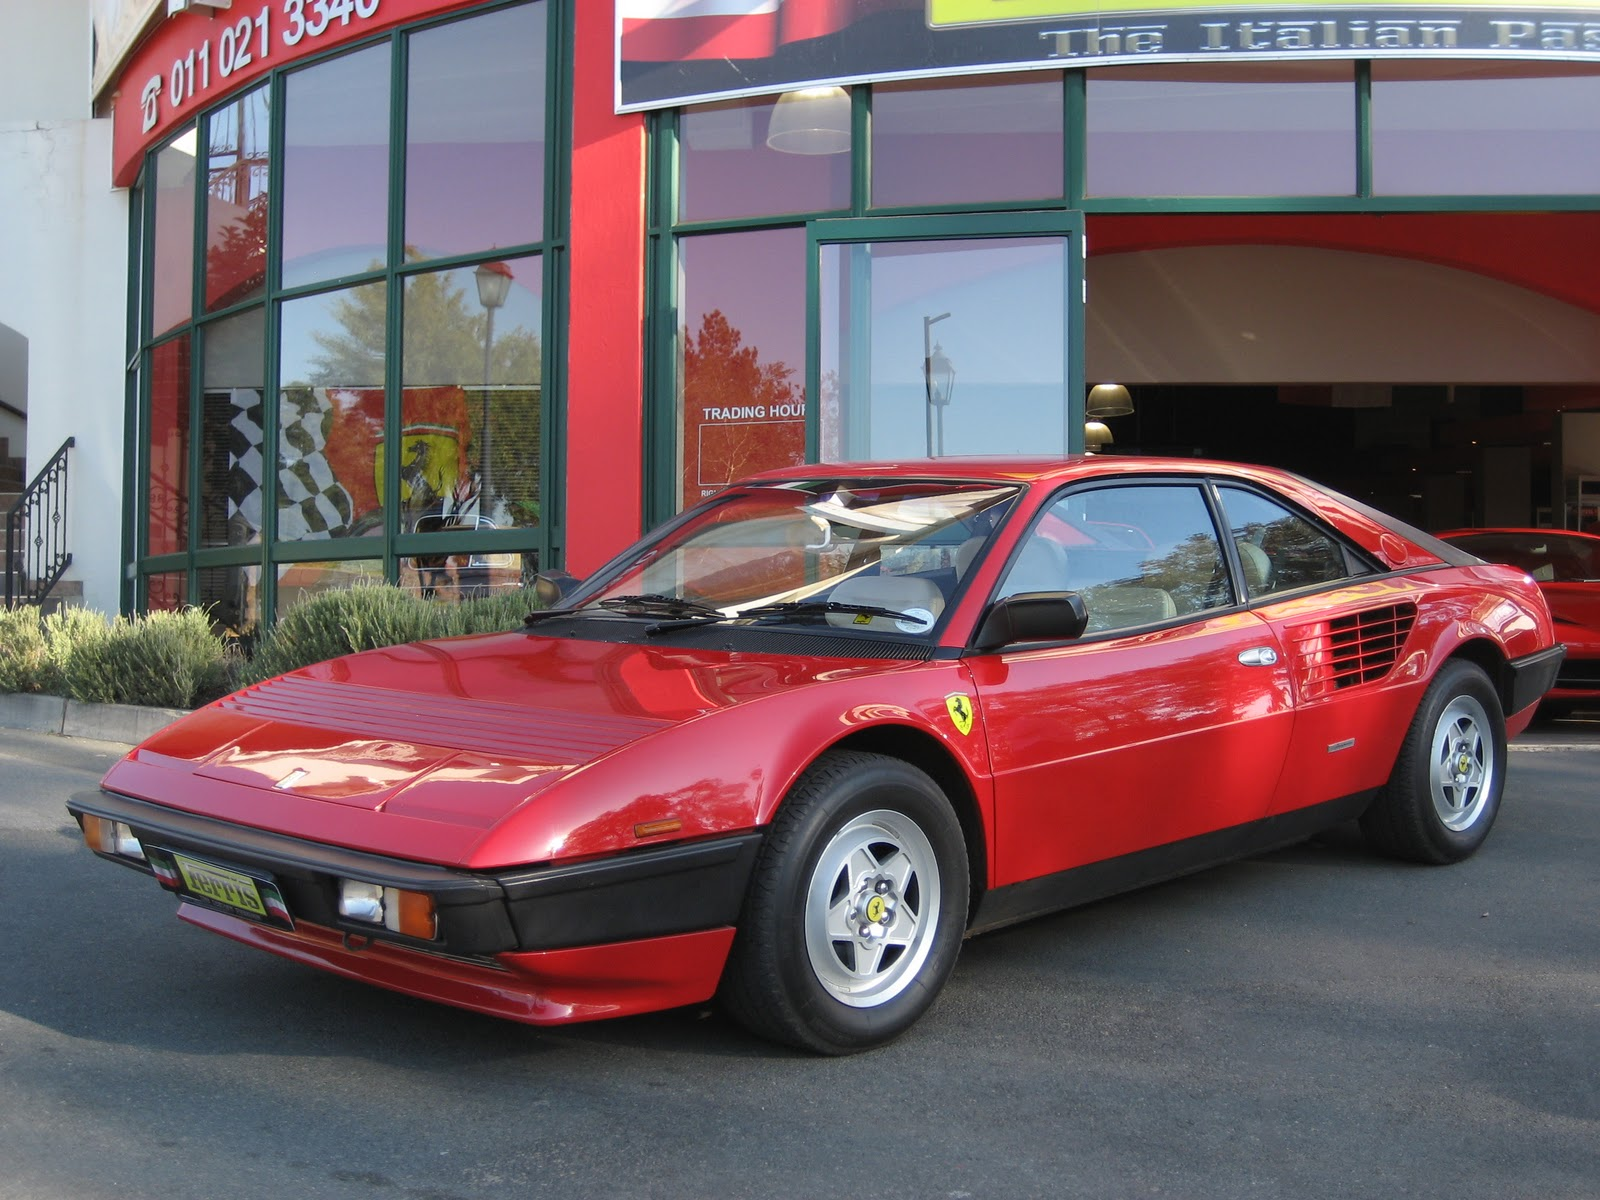 IMG_5089 Outstanding Ferrari Mondial 8 Sale south Africa Cars Trend